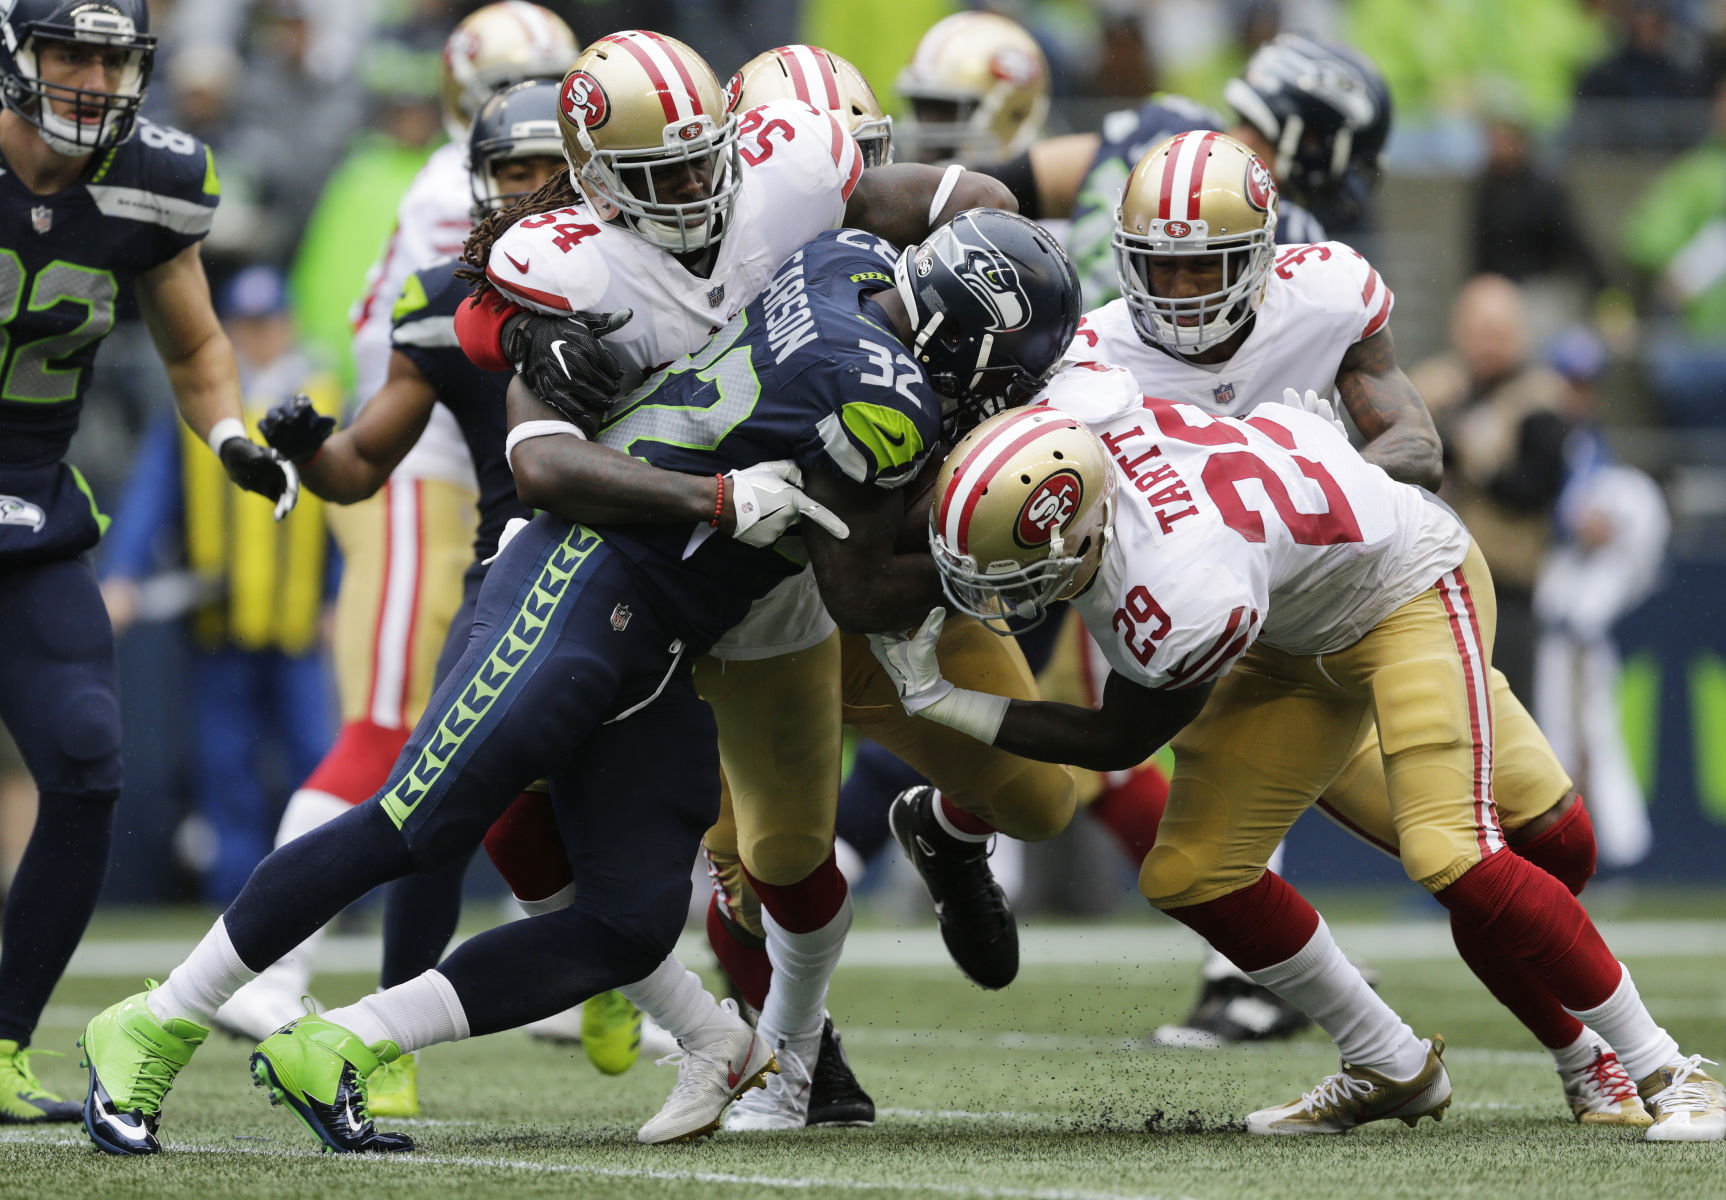 Brawl Breaks Out After Richard Sherman Hits Marcus Mariota Late